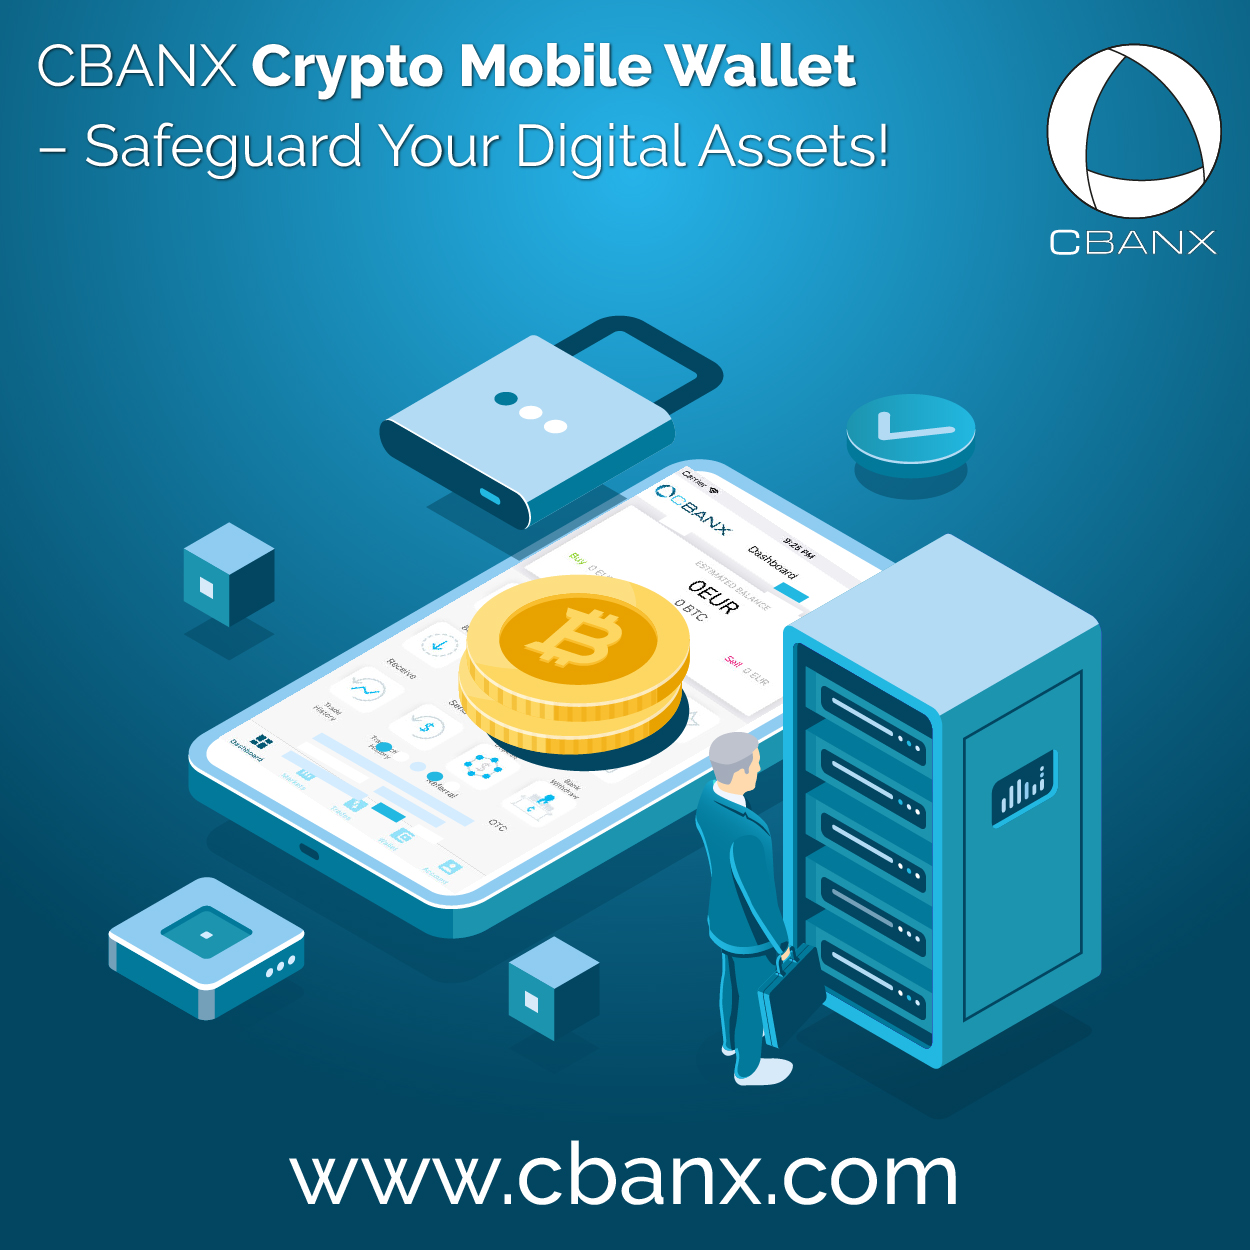 CBANX Crypto Mobile Wallet – Safeguard Your Digital Assets!